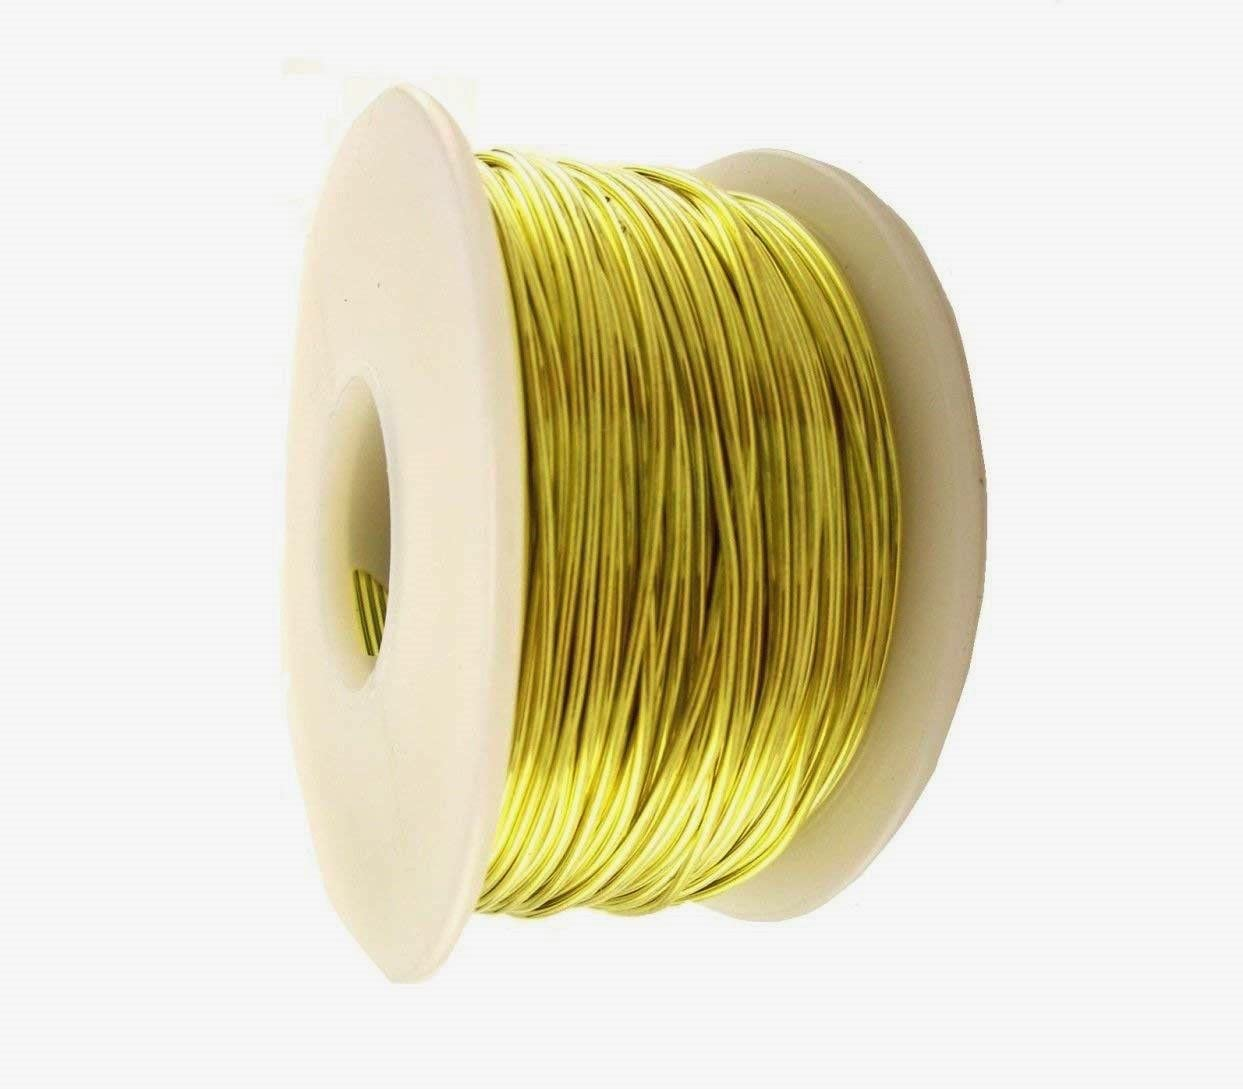 BRASS WIRE ROUND 22 Ranking TOP14 GAUGE SOFT 1 FT 480 Cheap Lb FINDING JEWELRY SPOOL